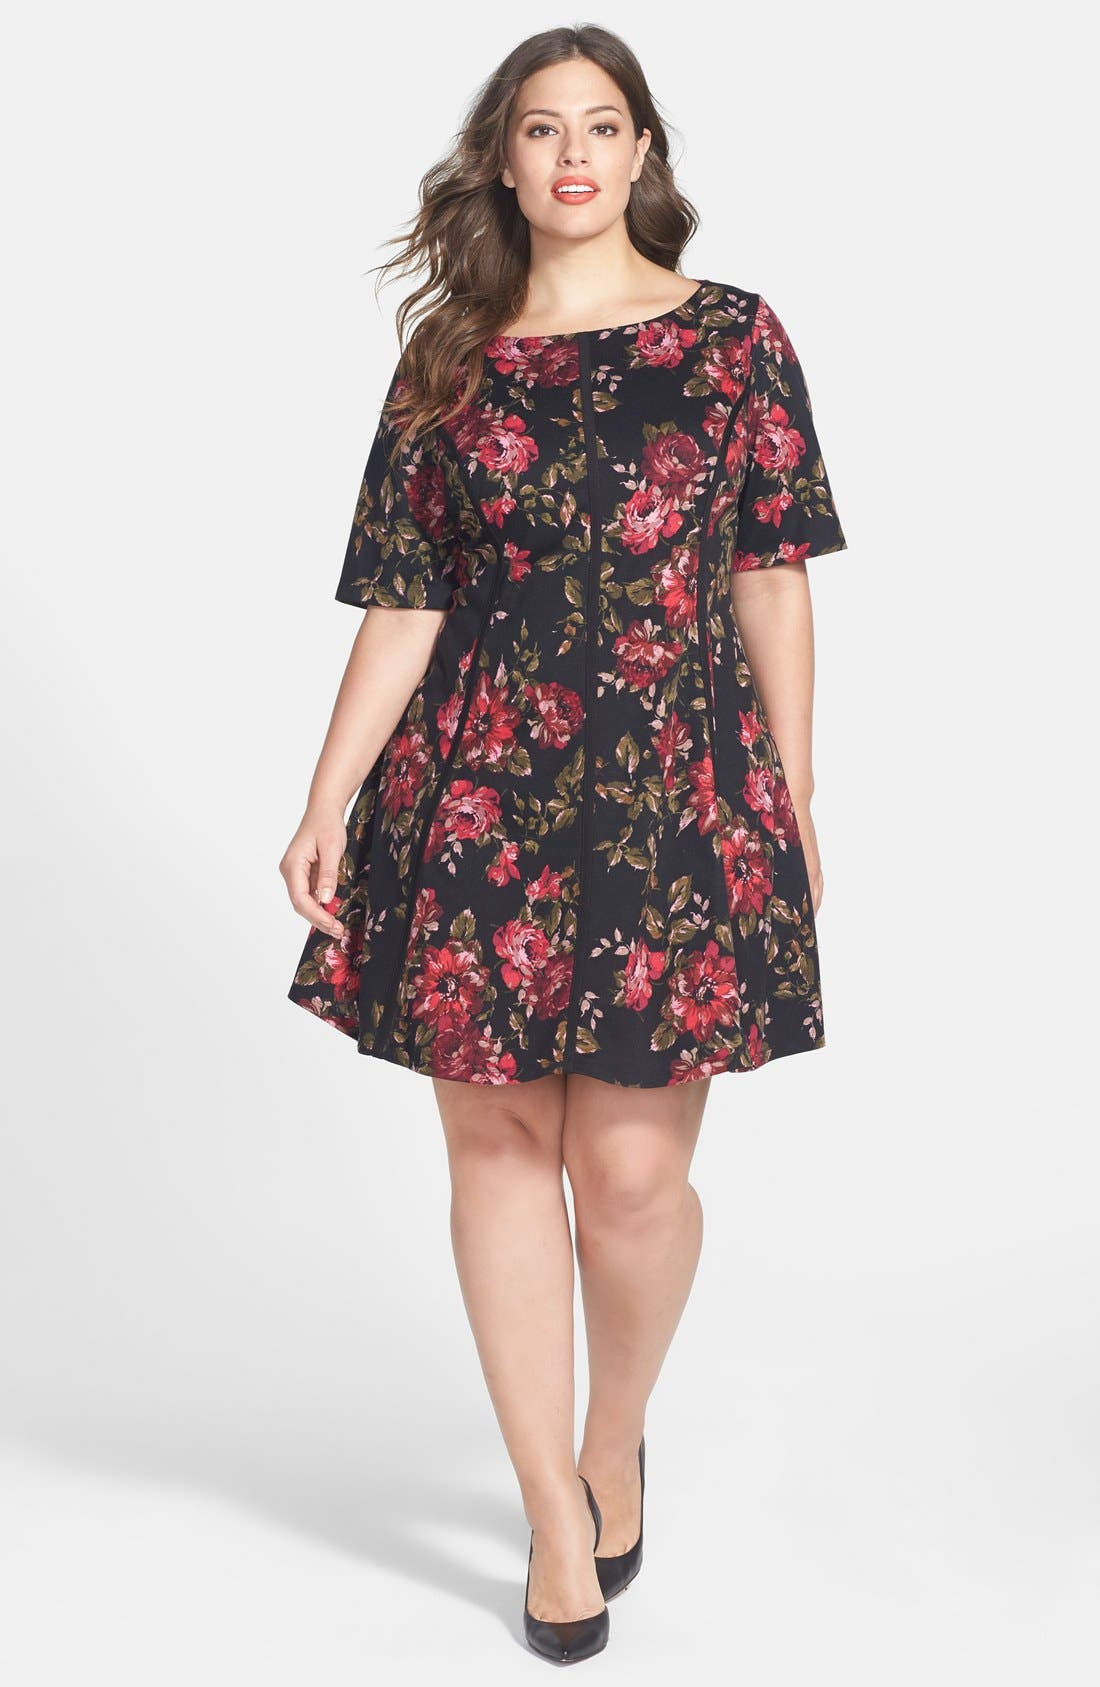 Alternate Image 1 Selected - Gabby Skye Floral Print Fit & Flare Dress (Plus Size)